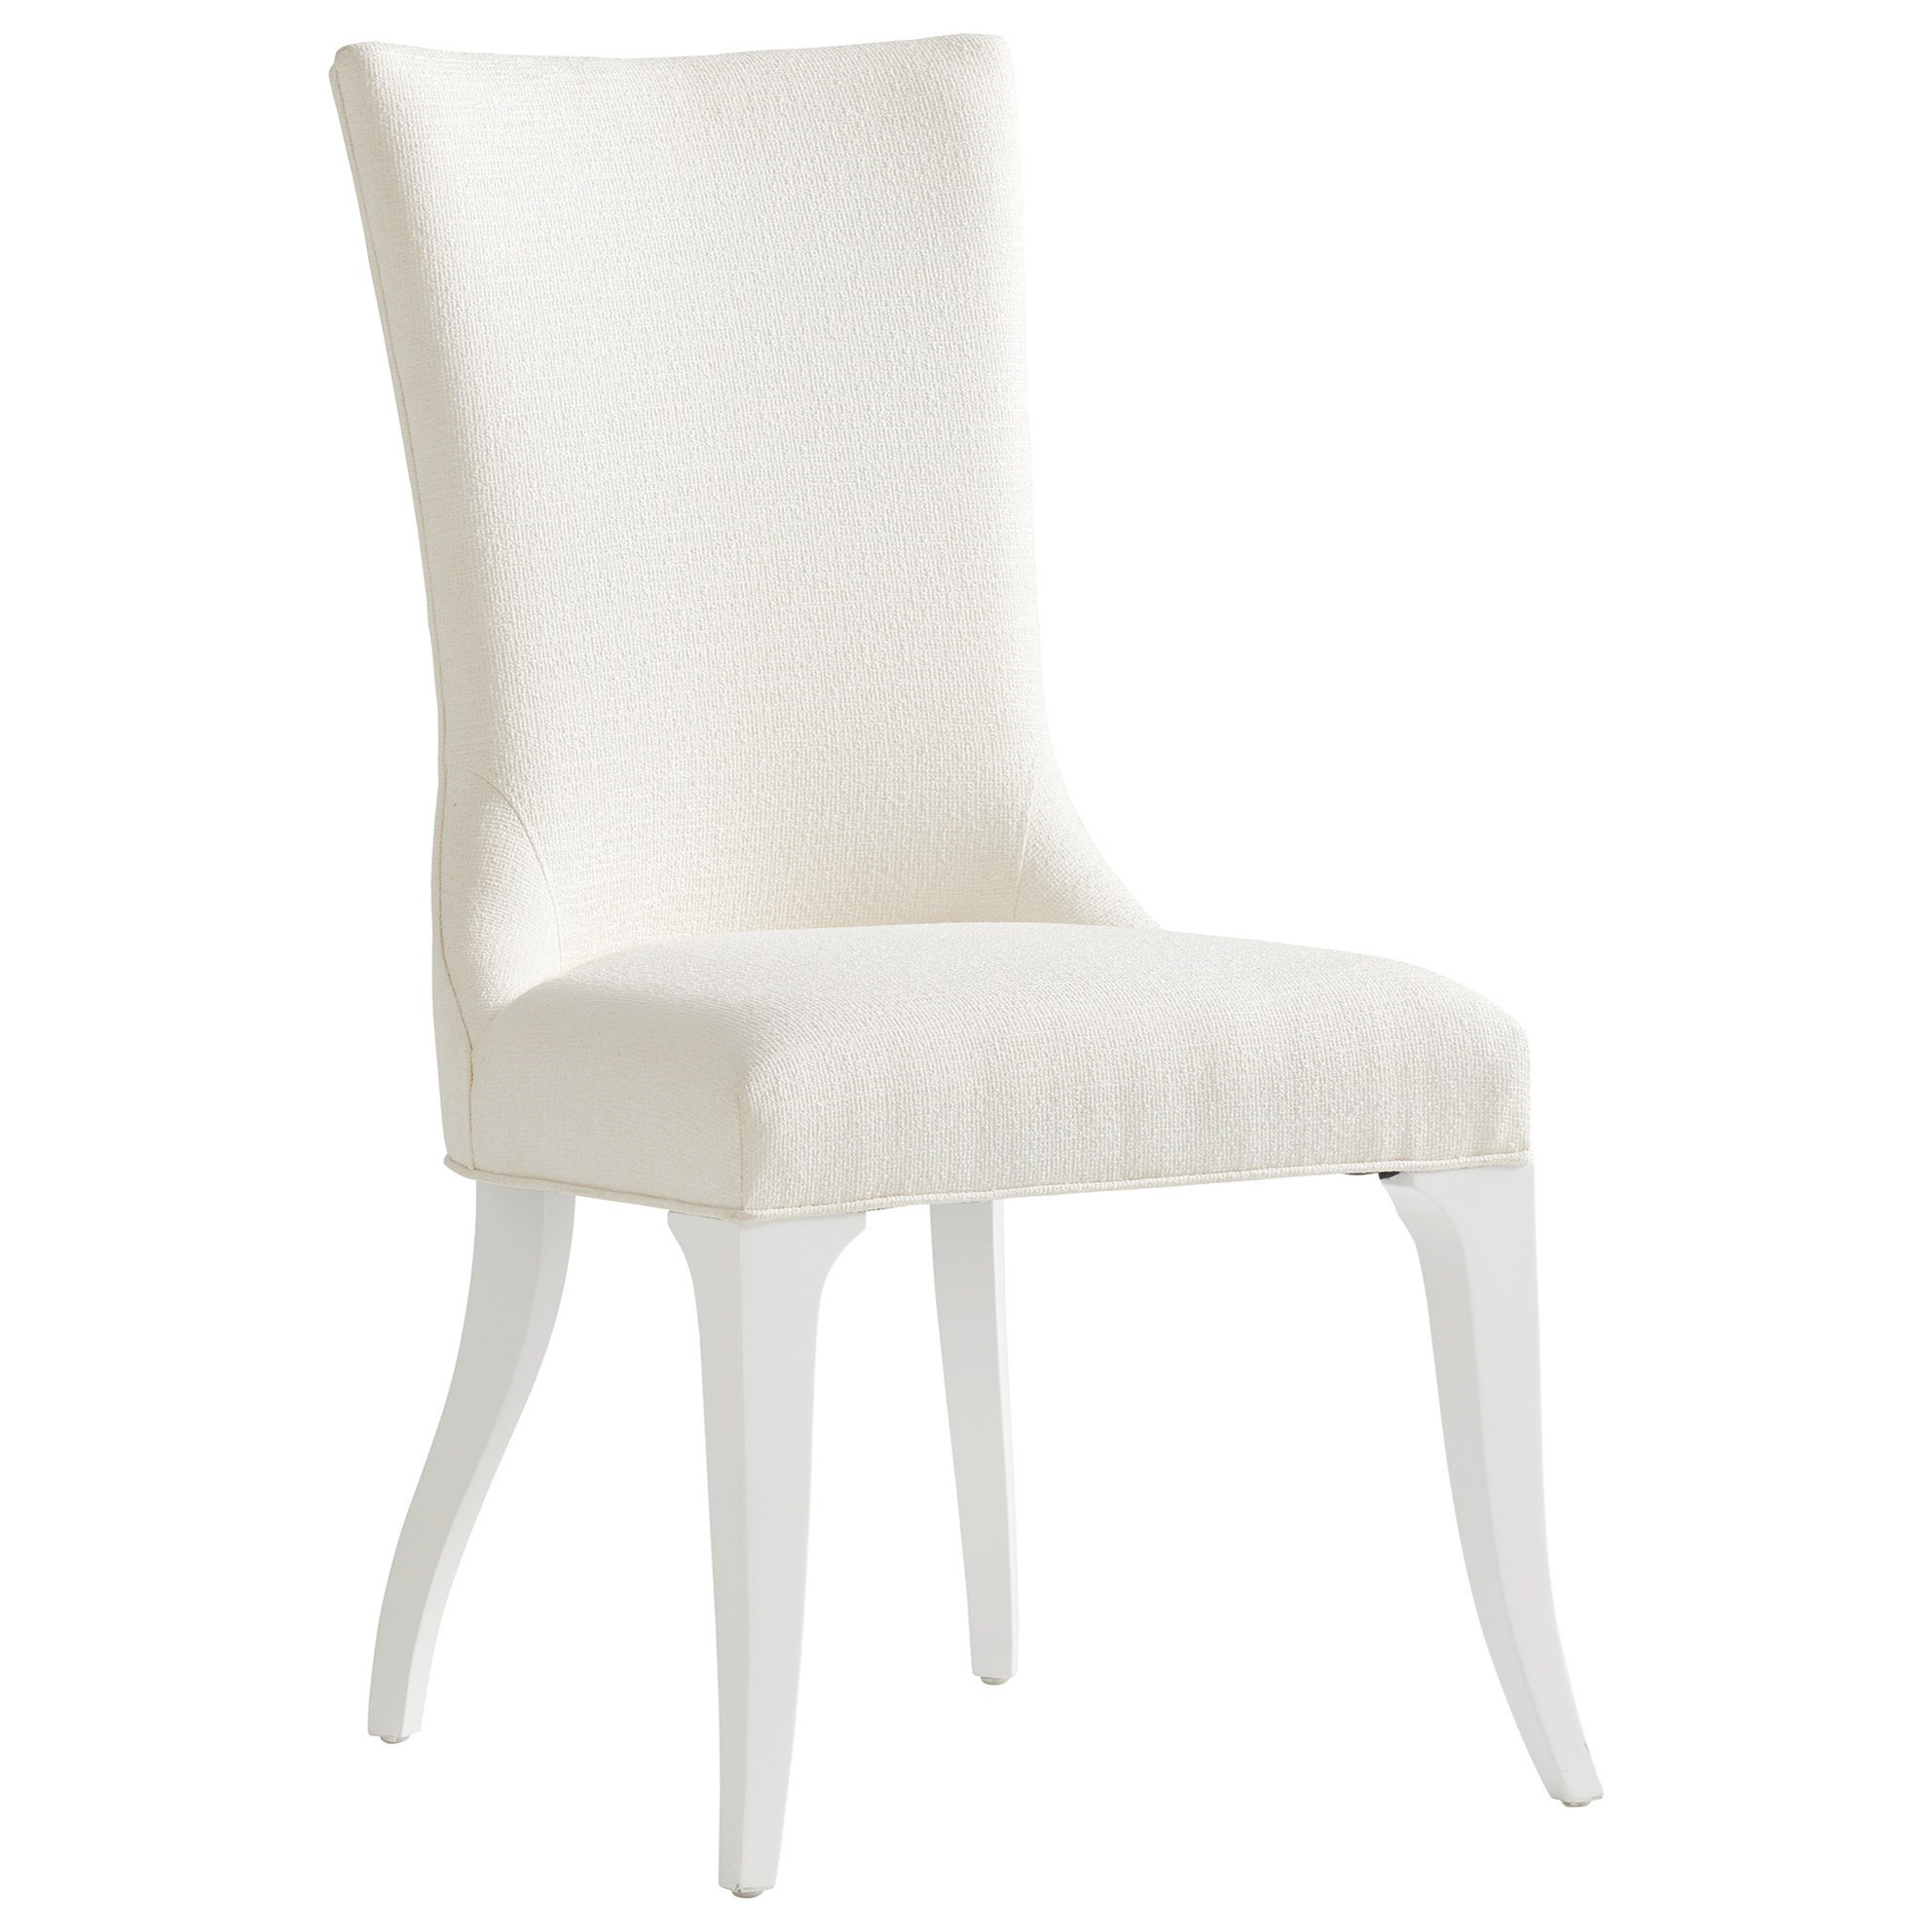 Avondale Geneva Upholstered Side Chair by Lexington at Johnny Janosik